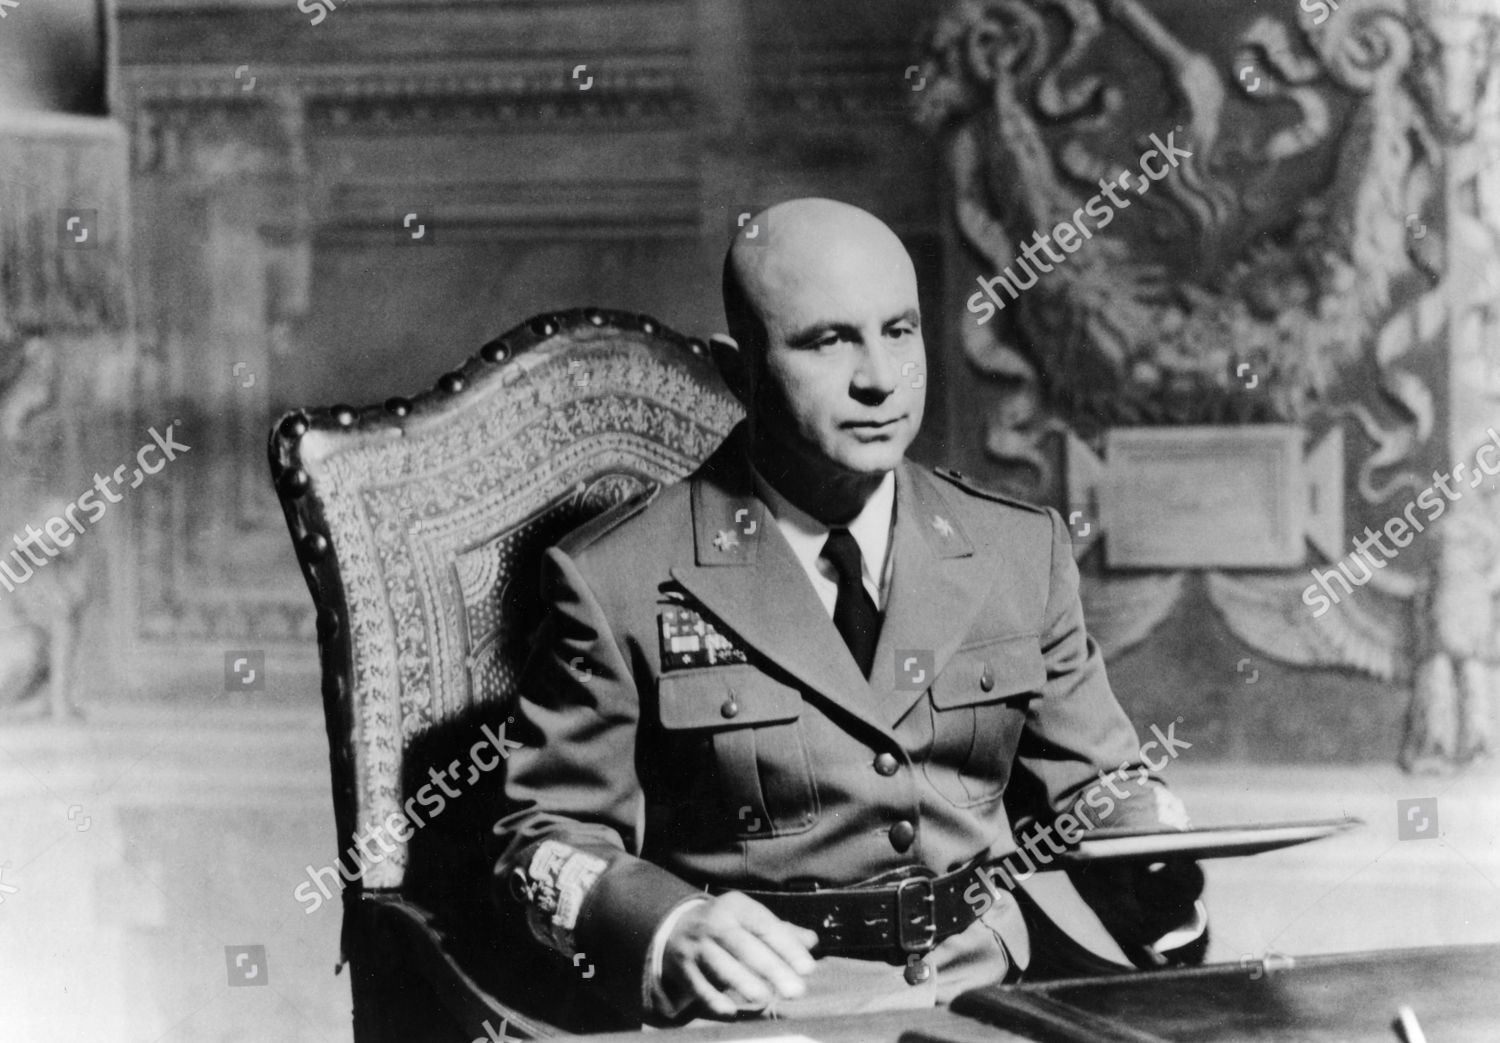 Mussolini - The Decline and Fall Of Il Duce - 1985